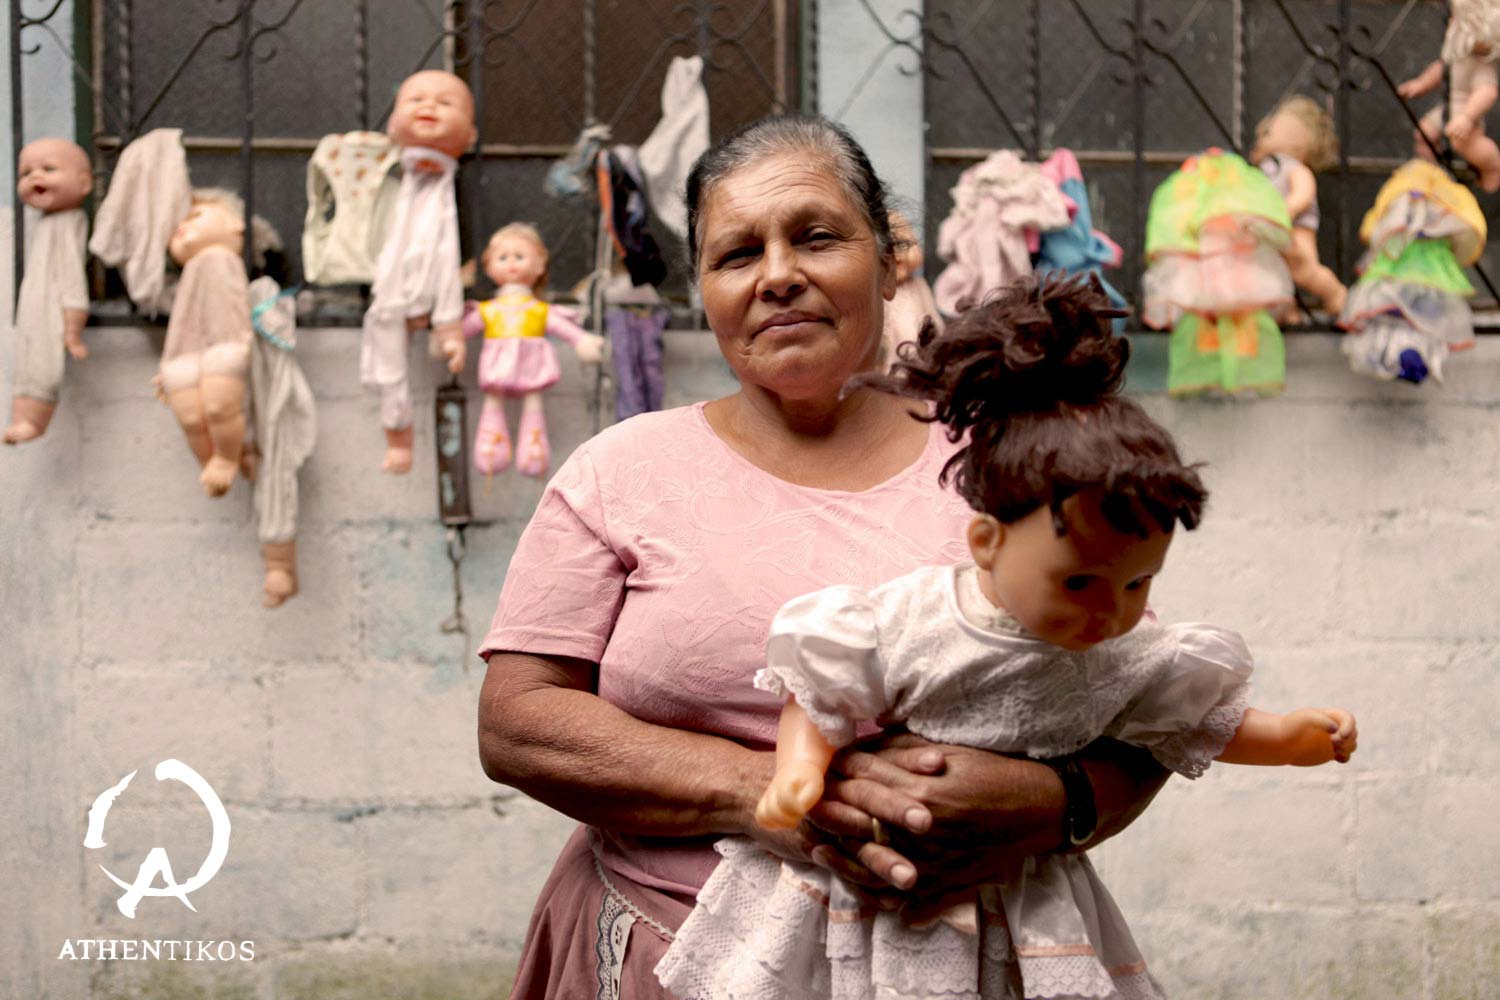 Maria, The Doll Lady, from the documentary, Reparando.